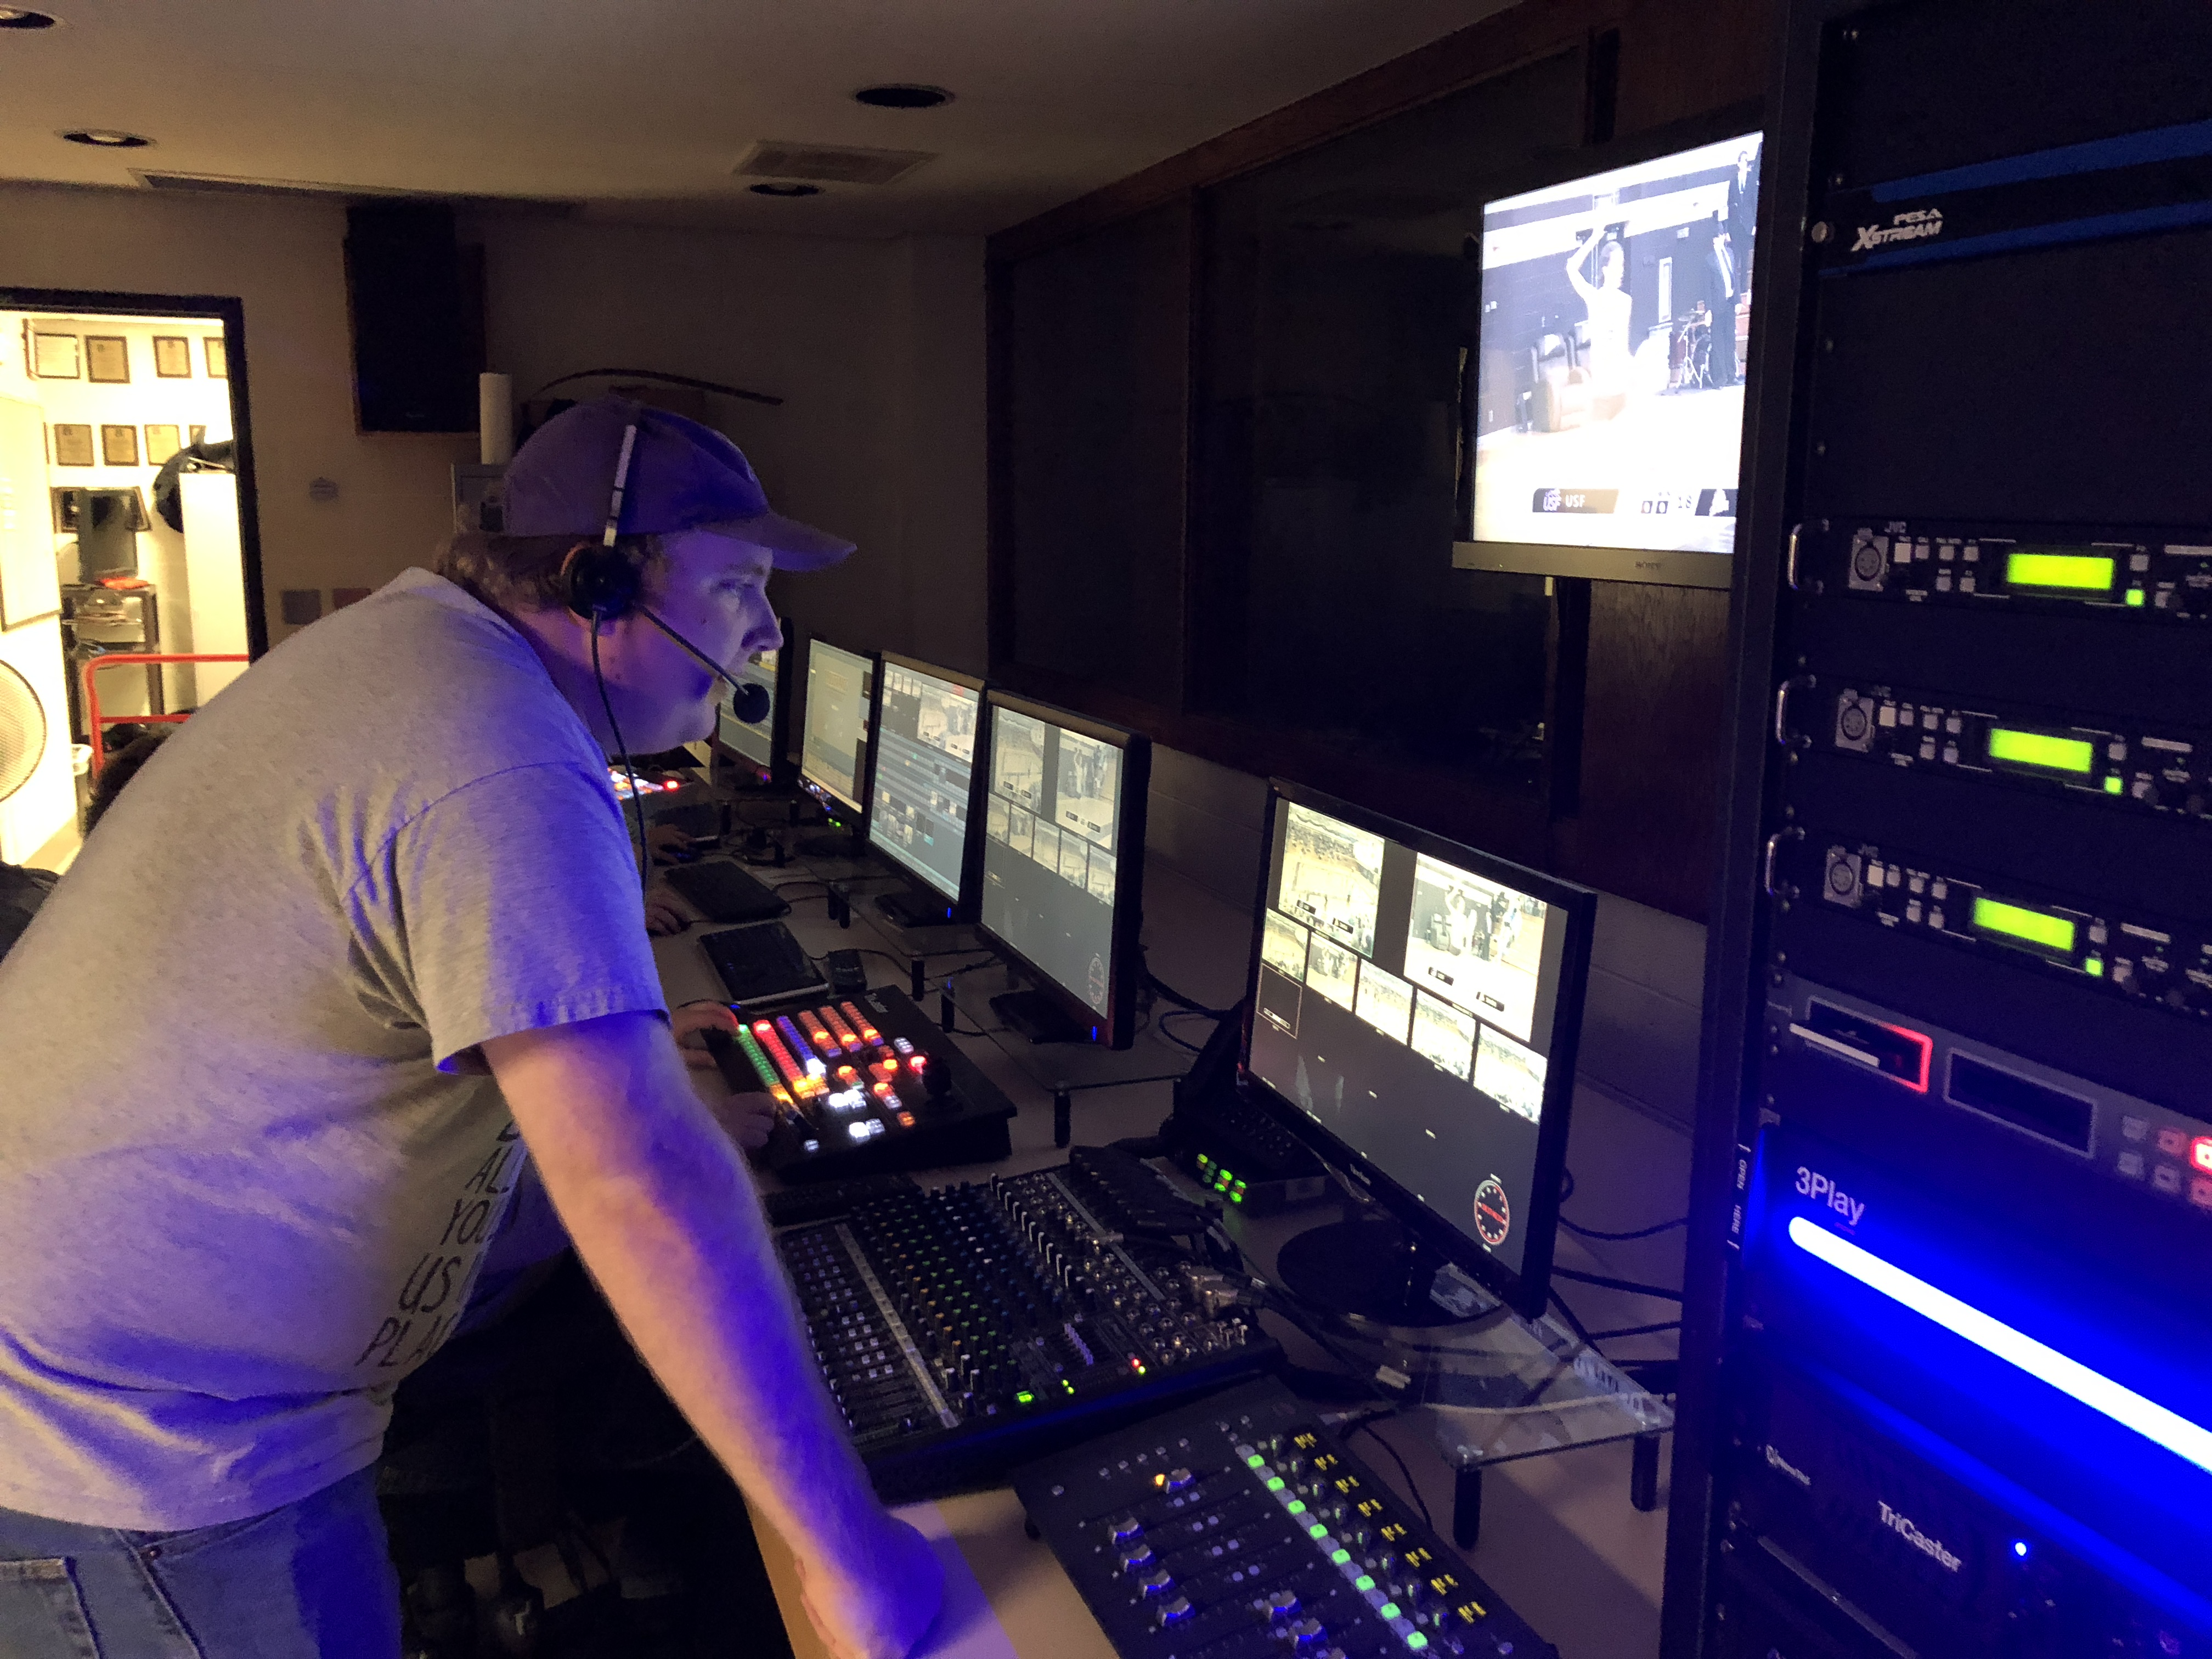 Nick Dahloff directing the Oct. 31, 2017 volleyball production from the control room